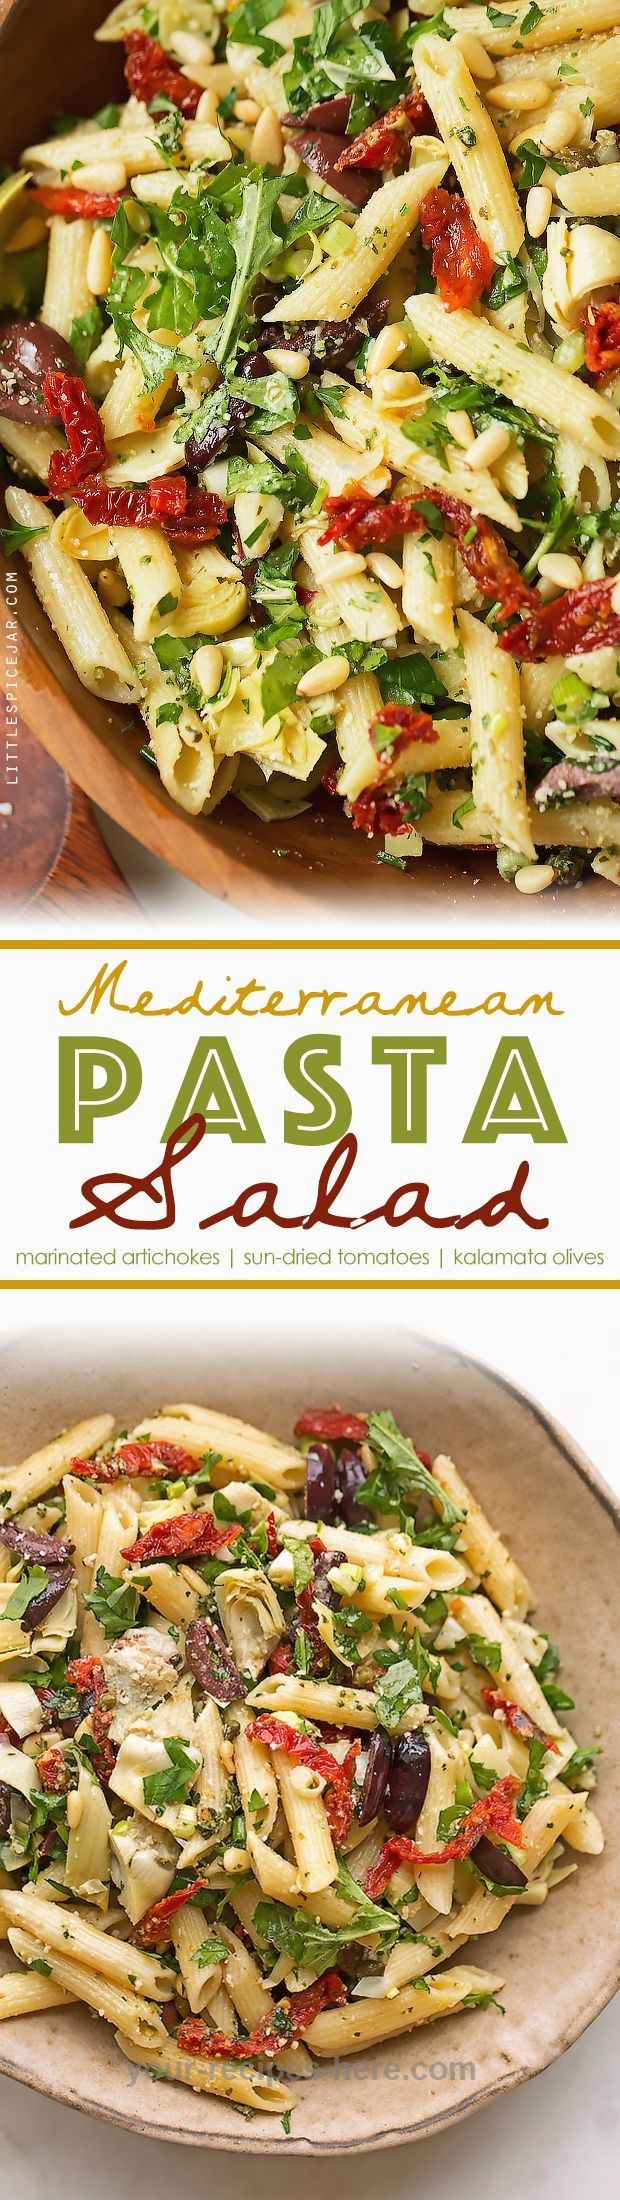 Mediterranean Pasta Salad - This Cafe Express inspired pasta salad is loaded with marinated artichoke hearts, sun-dried tomatoes, kalamata olives, and so much more!  #pastasalad   #italianpastasalad   #mediterraneanpastasalad  |